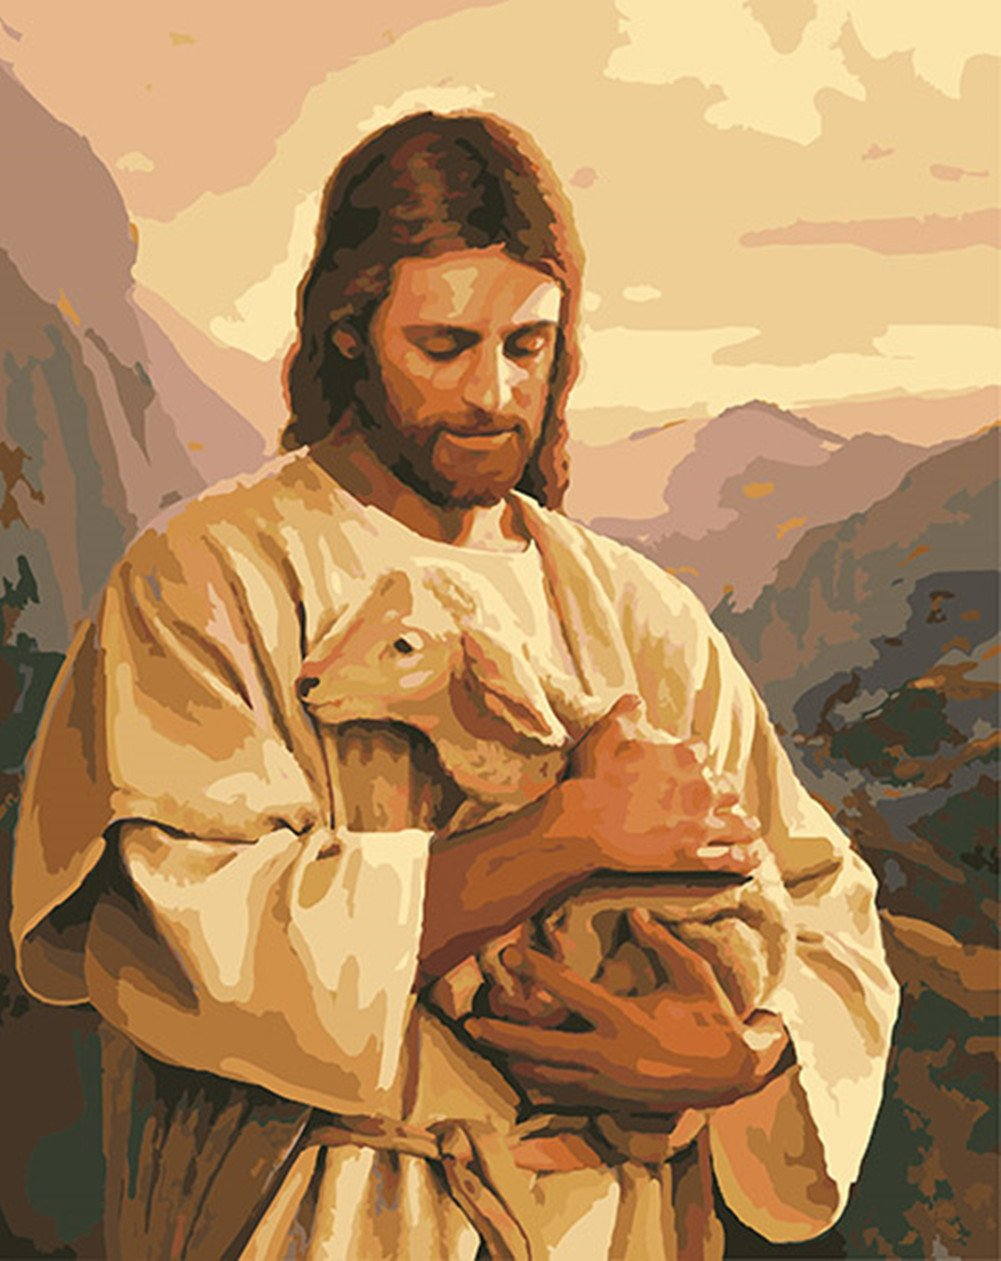 CaptainCrafts New Paint by Numbers 16x20 for Adults, Kids LINEN Canvas - Jesus Embrace Small Shepherd (With Frame) by CaptainCrafts